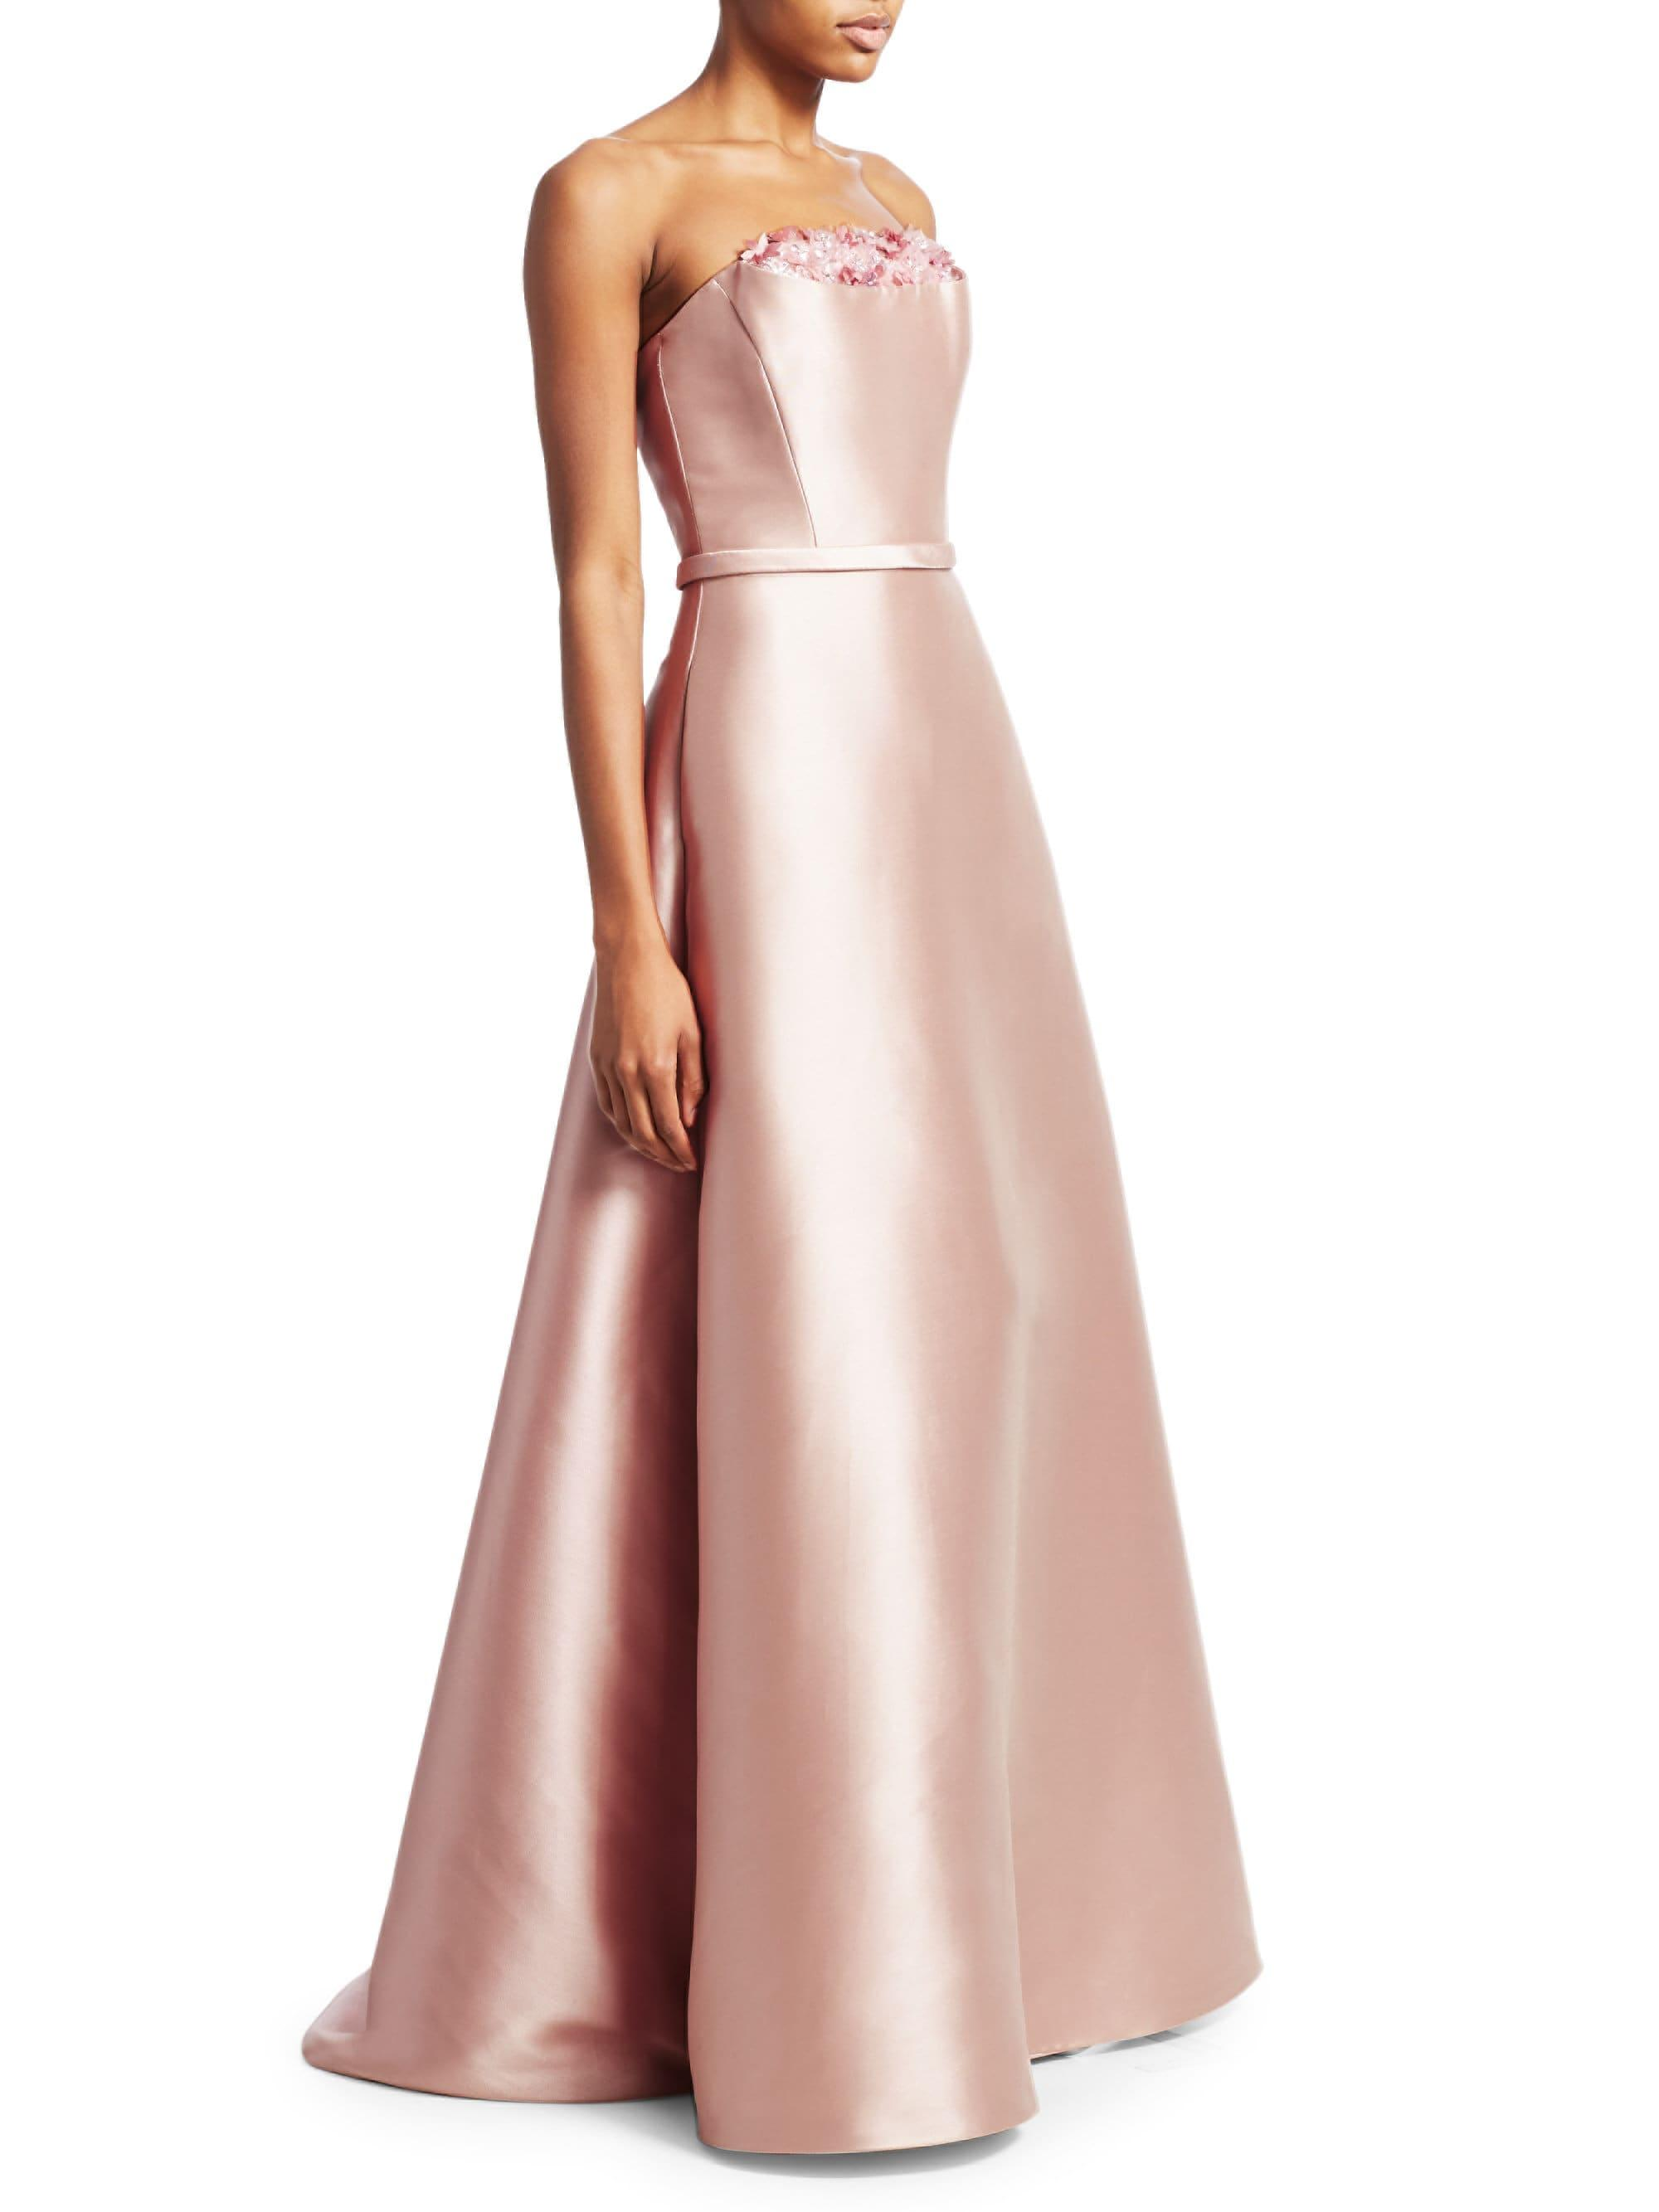 c35f7ae53e Lyst - THEIA Women s Crumb Catcher Strapless Gown - Blush - Size 16 ...